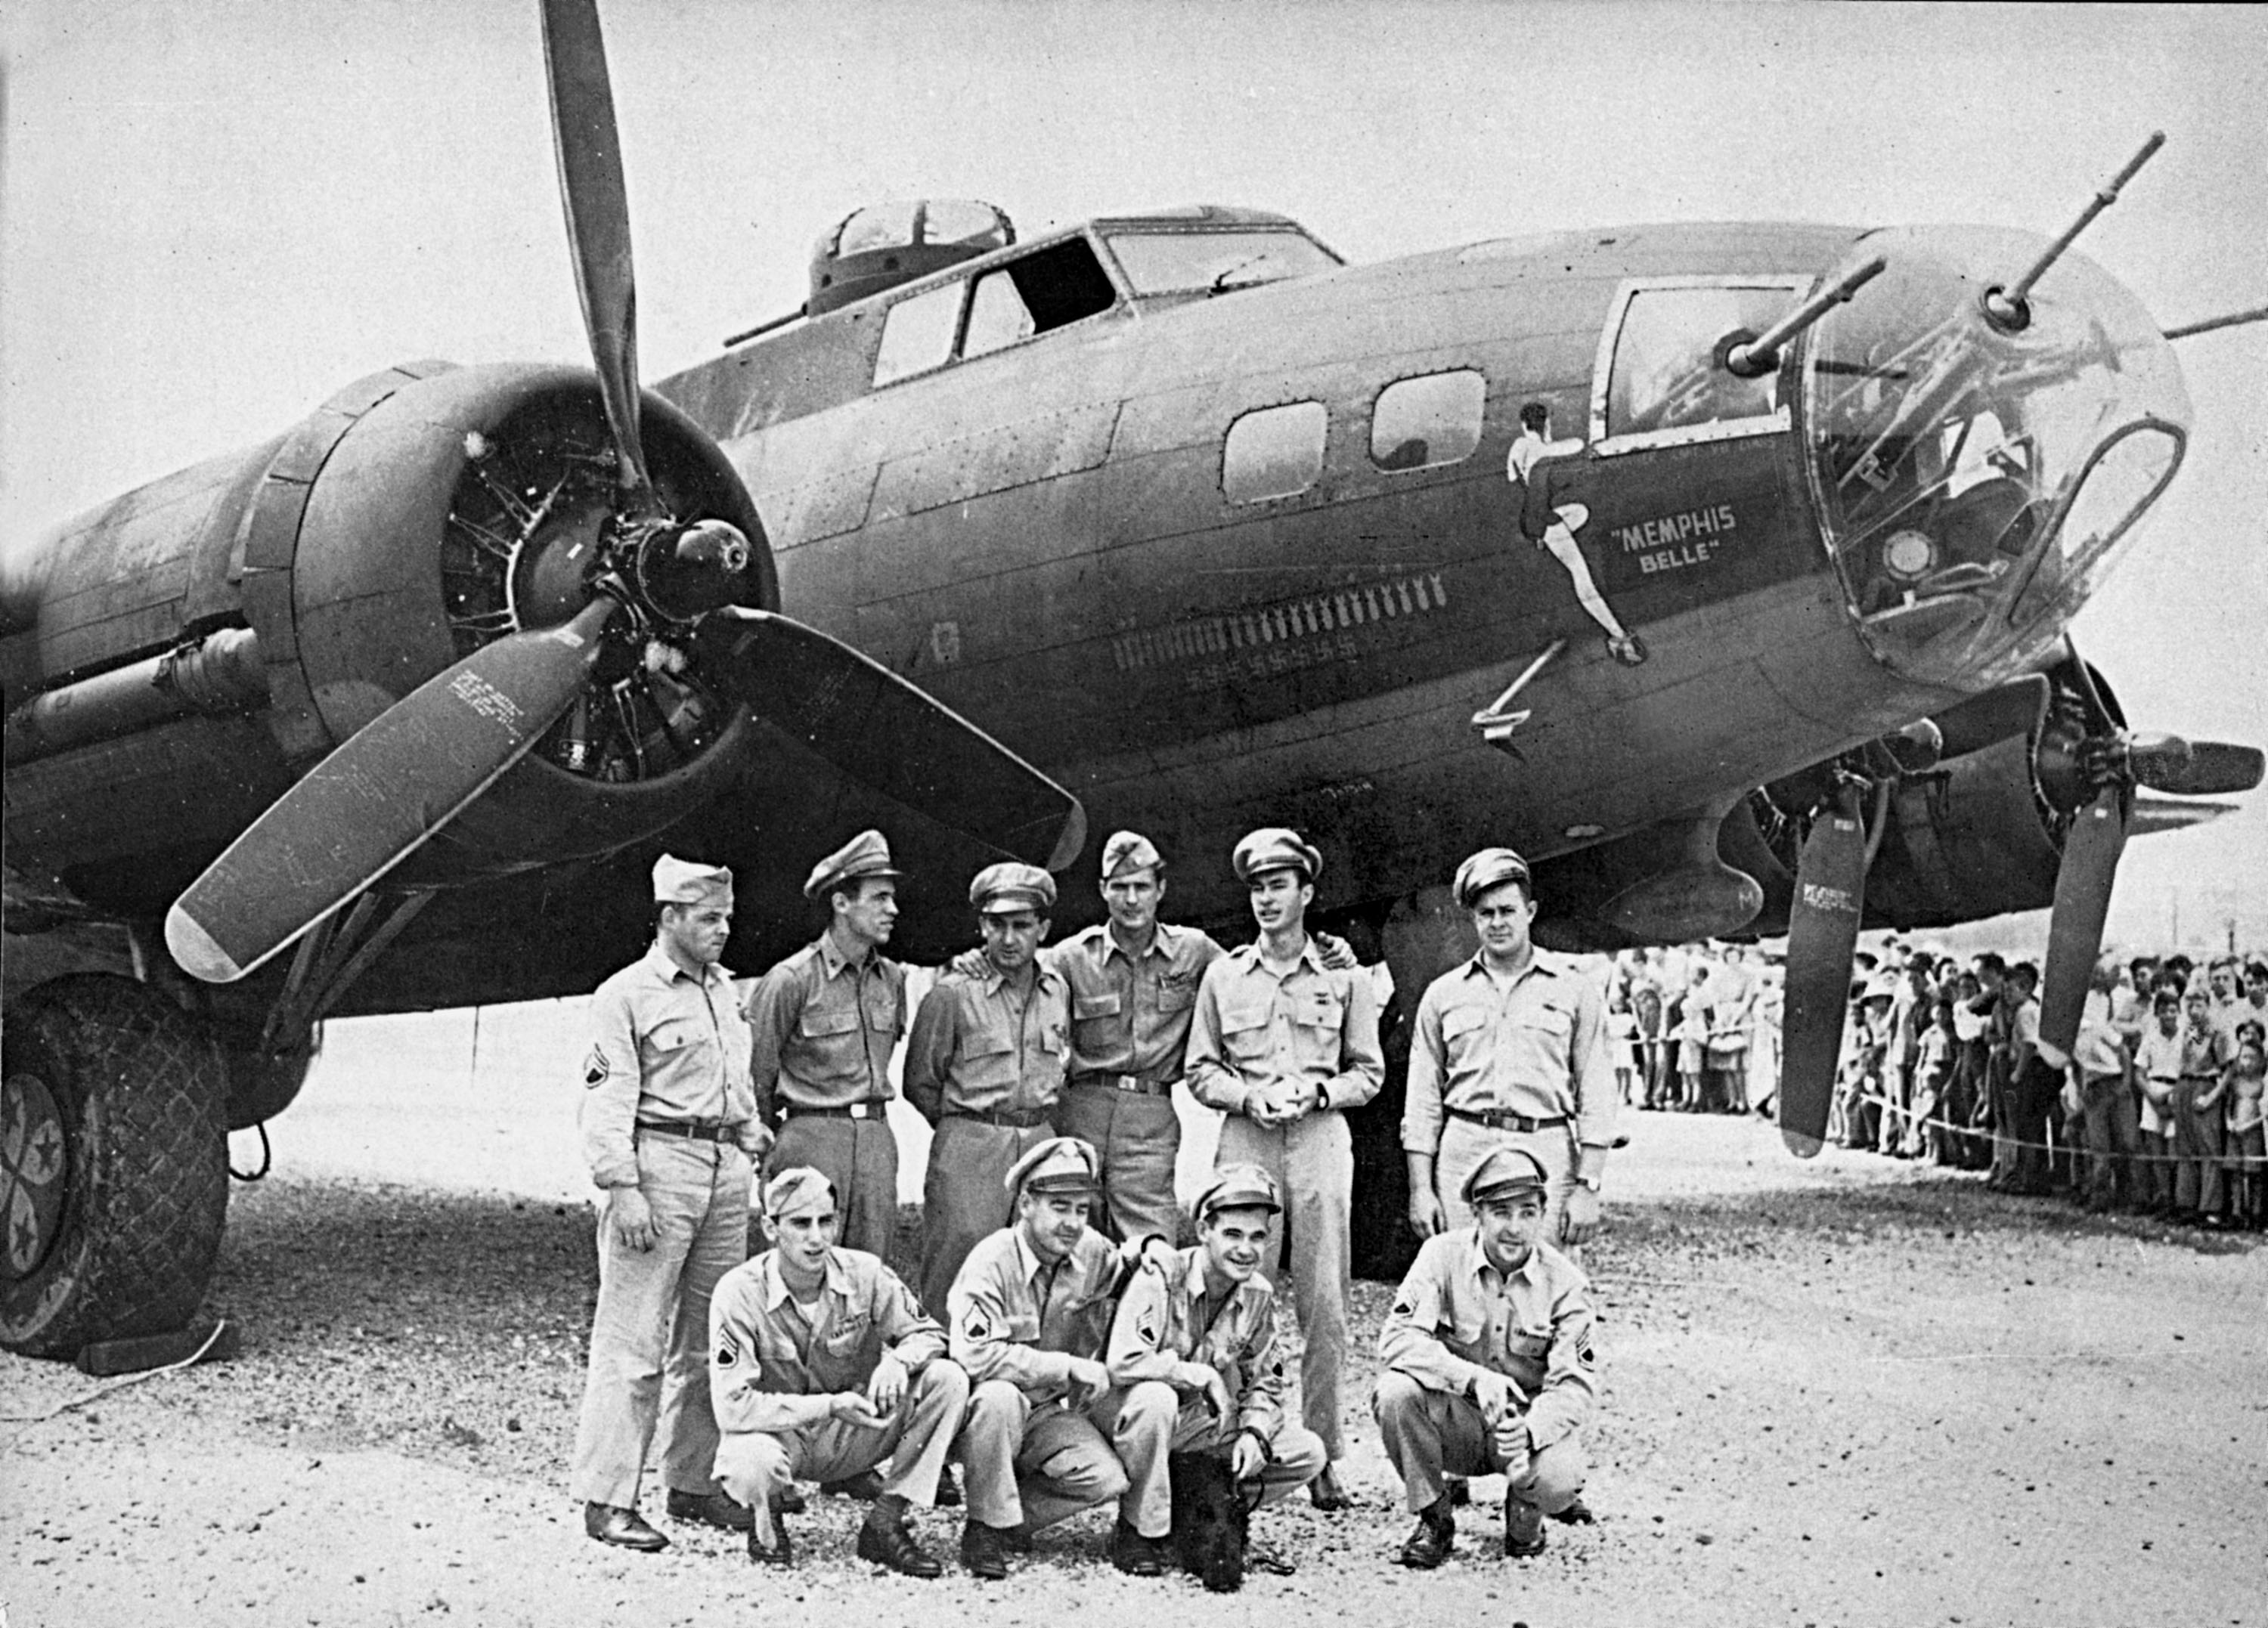 Wwii Memphis Belle B 17 To Be Displayed At National